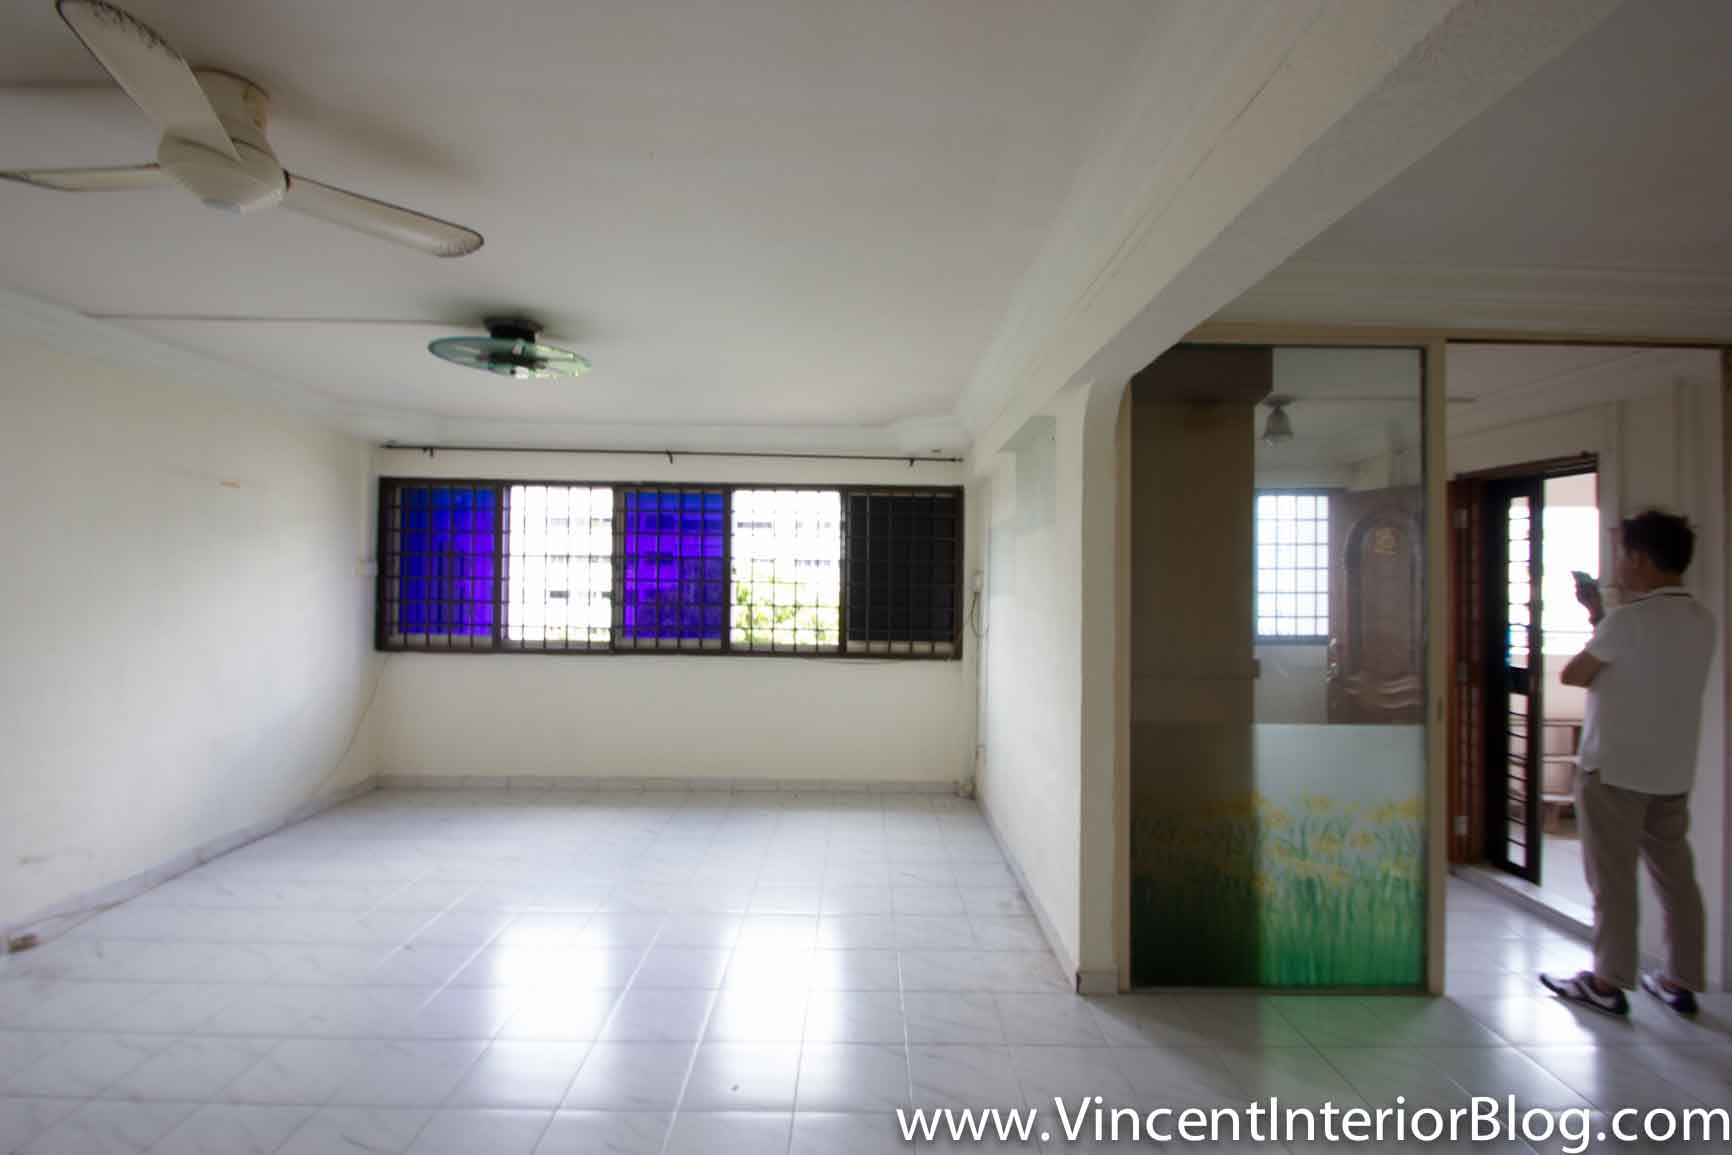 Bto 5 room interior design for Interior design for 5 room hdb flat